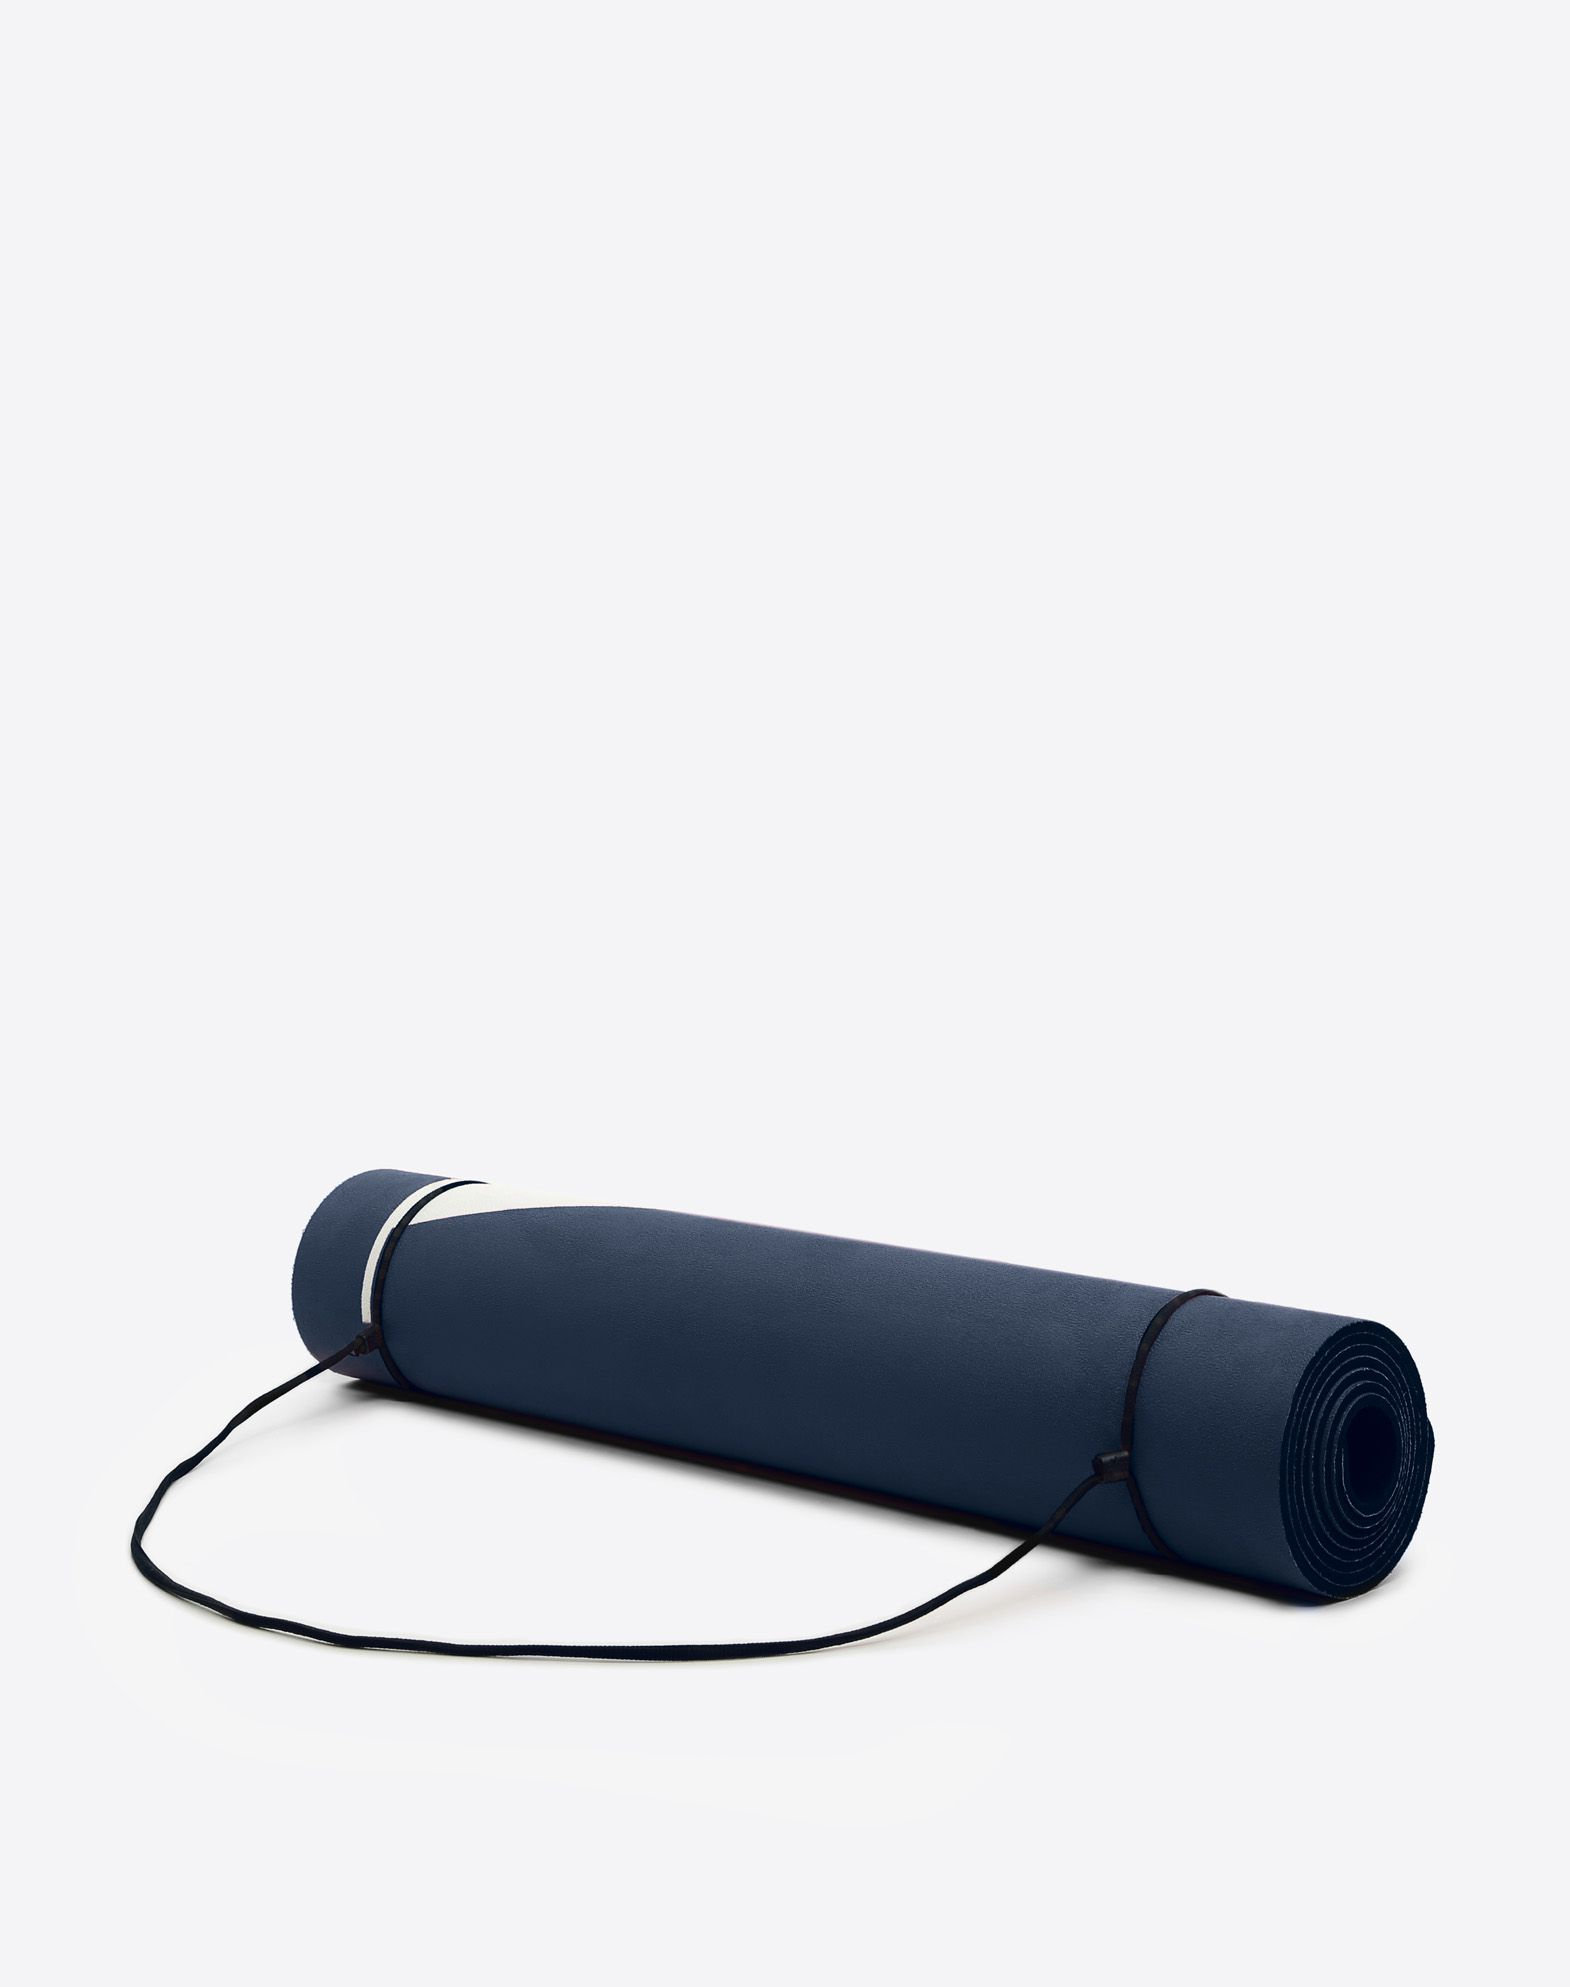 everyday made mat n should degree stretch american you mens yoga reasons mats why fifth casual workout clothing